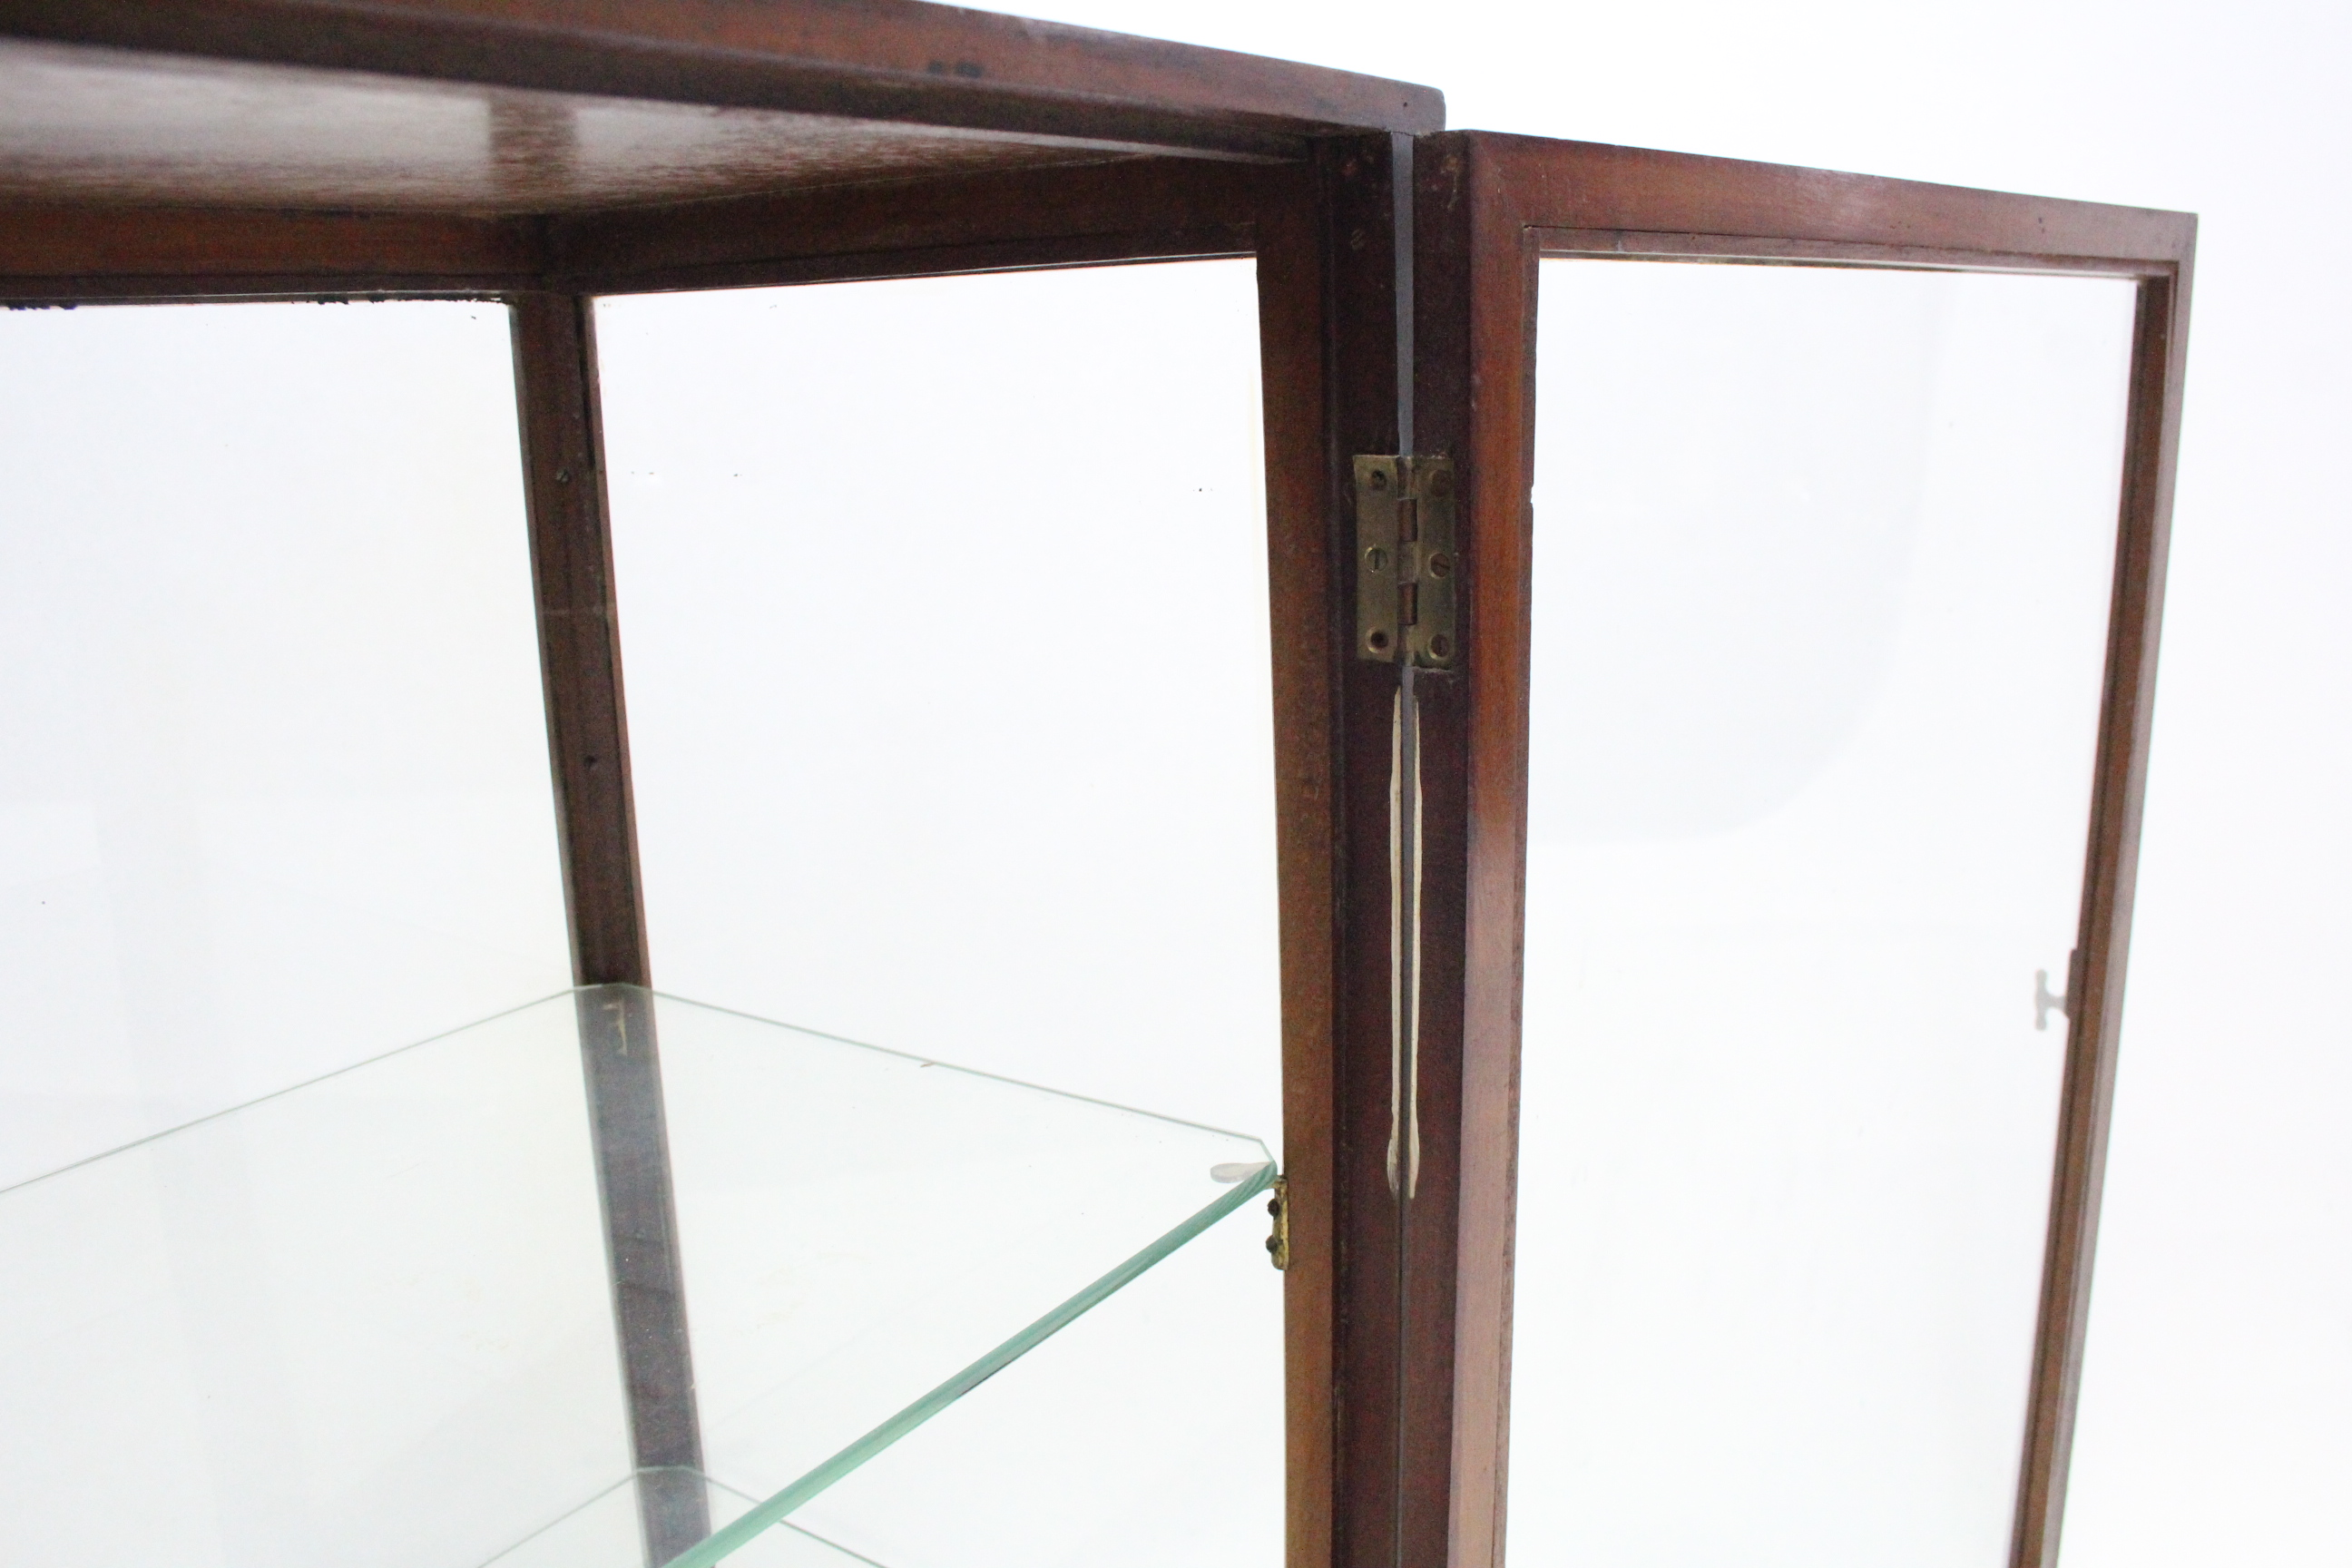 Lot 9 - A late 19th/early 20th century mahogany shop's counter-top display cabinet, fitted two plate-glass